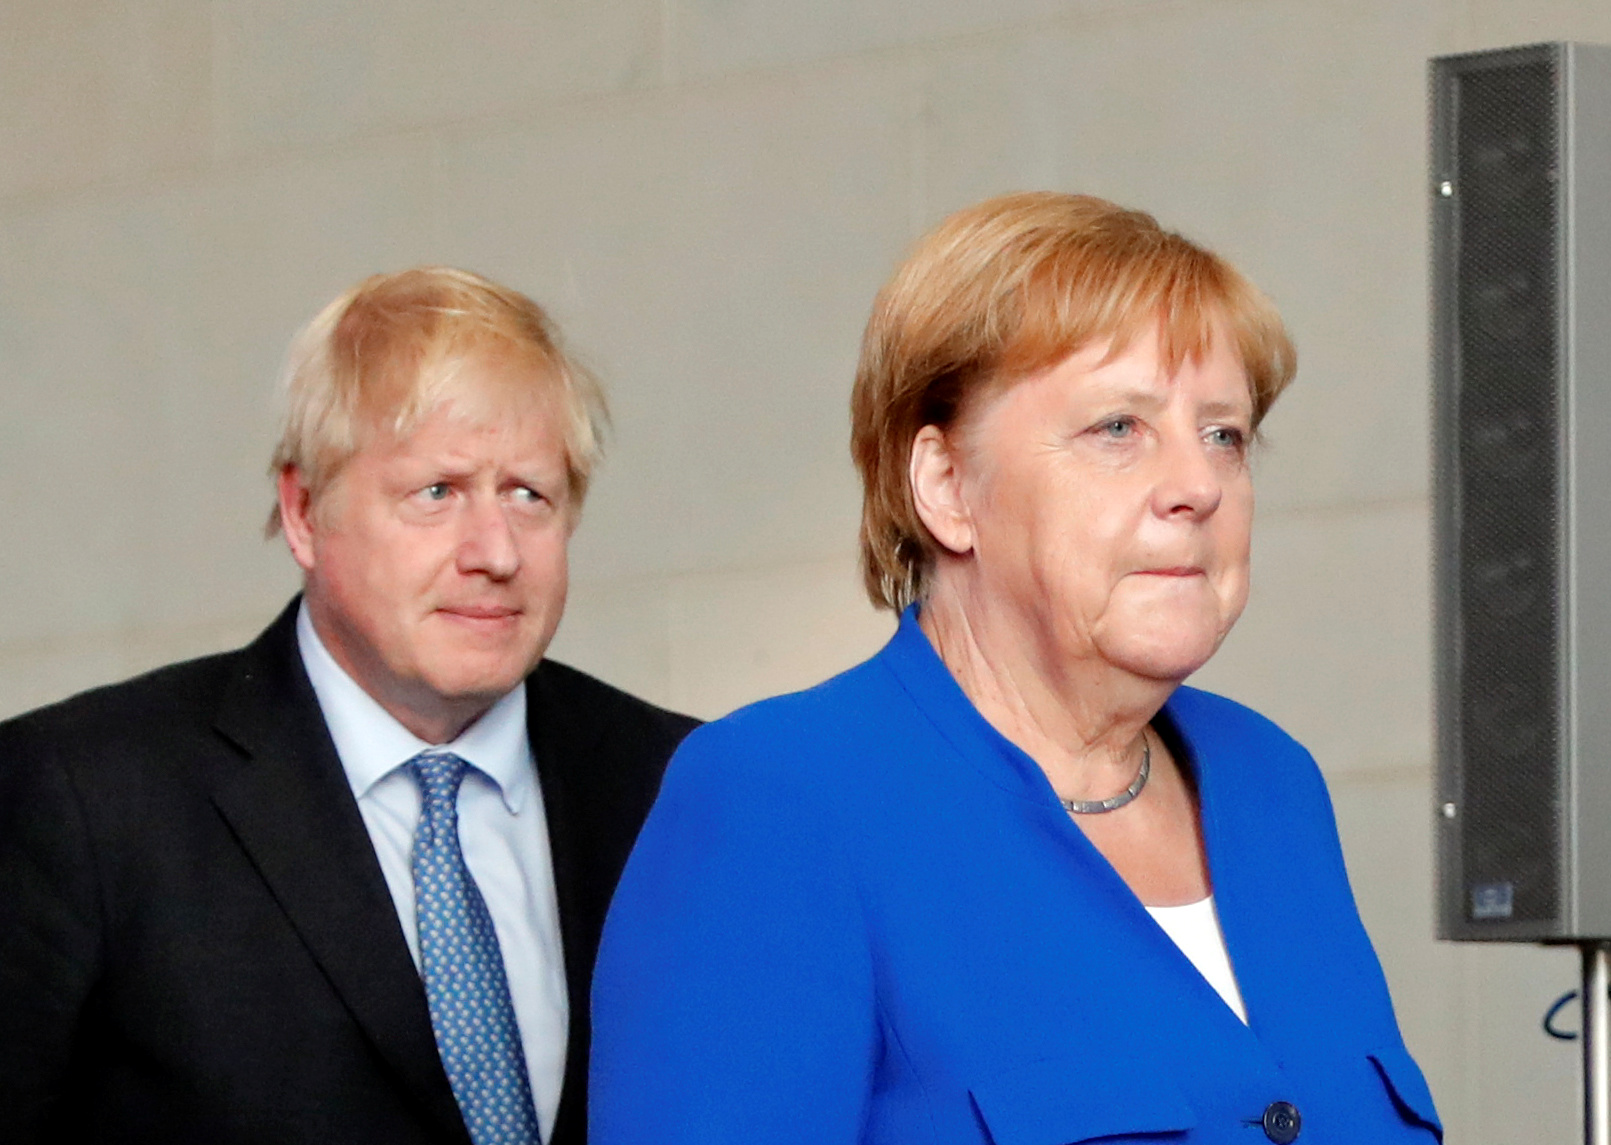 Britain's Prime Minister Boris Johnson and German Chancellor Angela Merkel are seen ahead of their news conference at the Chancellery in Berlin, Germany August 21, 2019. REUTERS/Fabrizio Bensch